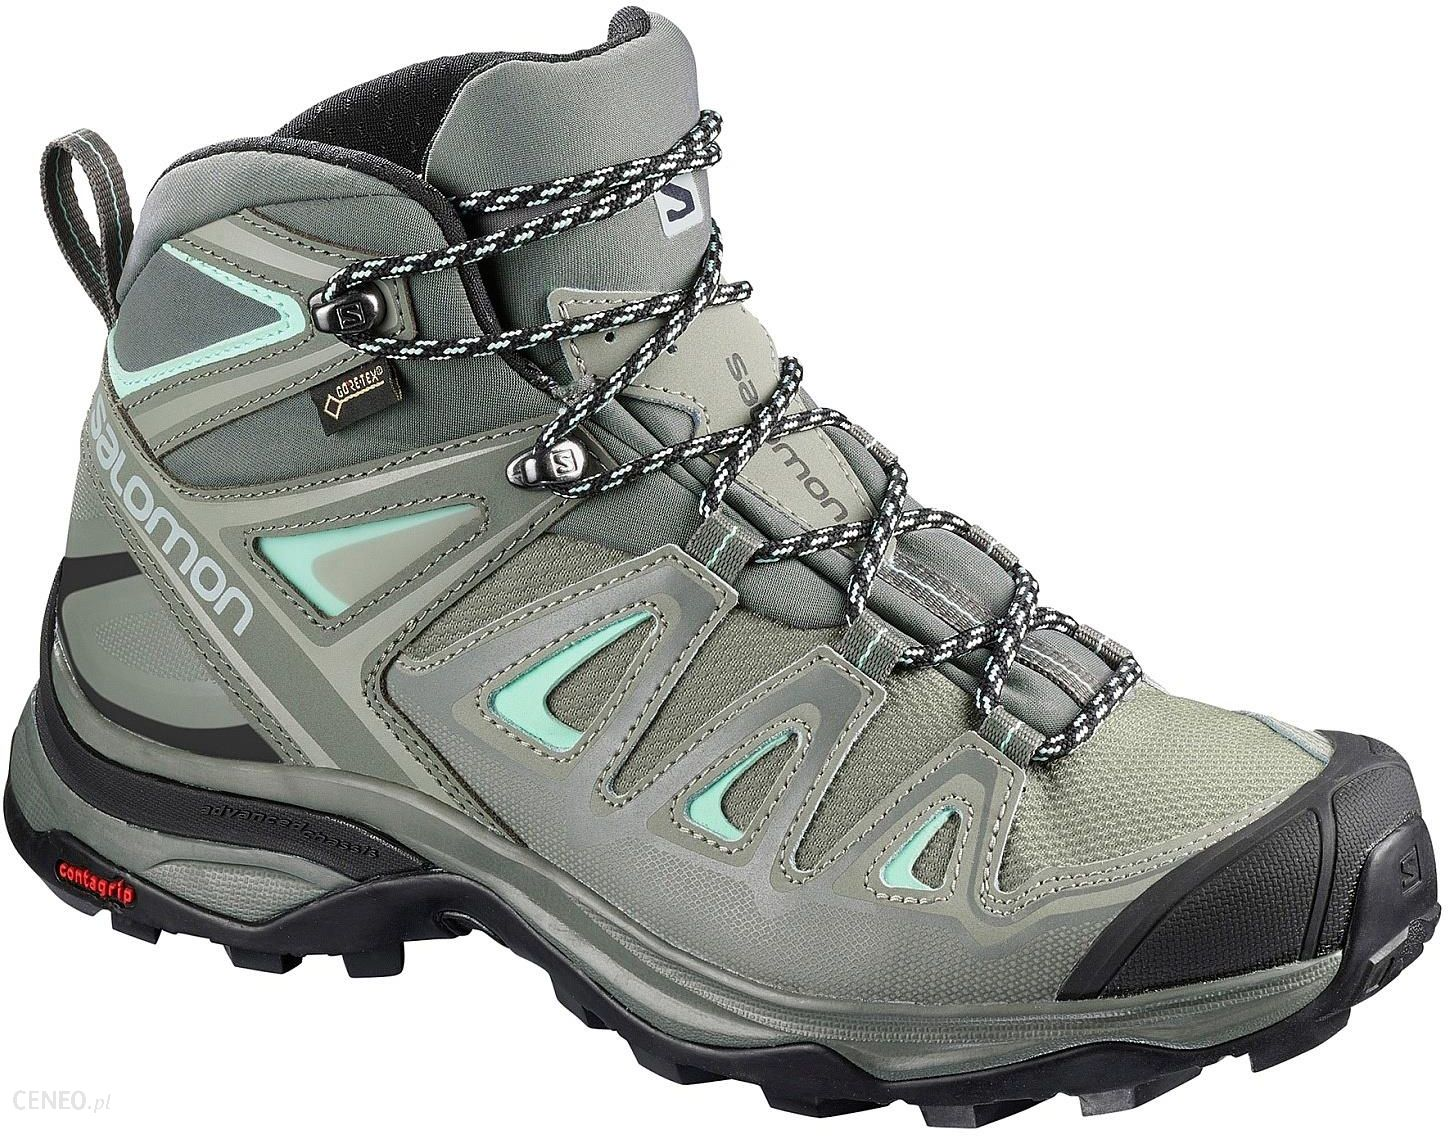 Salomon X ULTRA 3 Hiking shoes shadowcastor gray